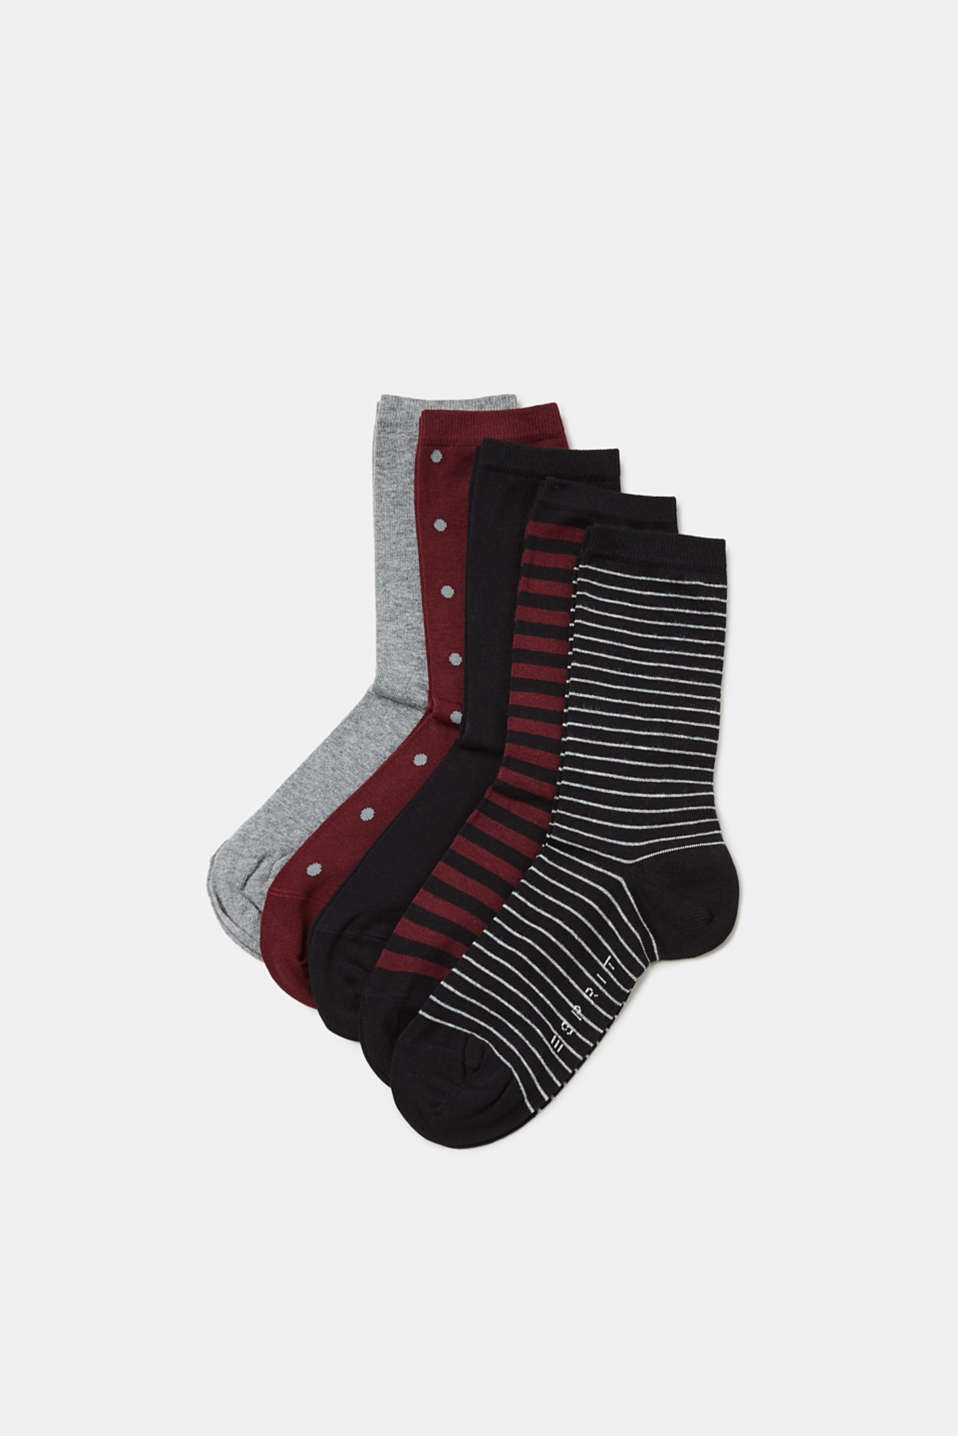 Whether plain coloured or with polka dots and stripes, this 5-pair pack of socks contains all our favourite patterns.